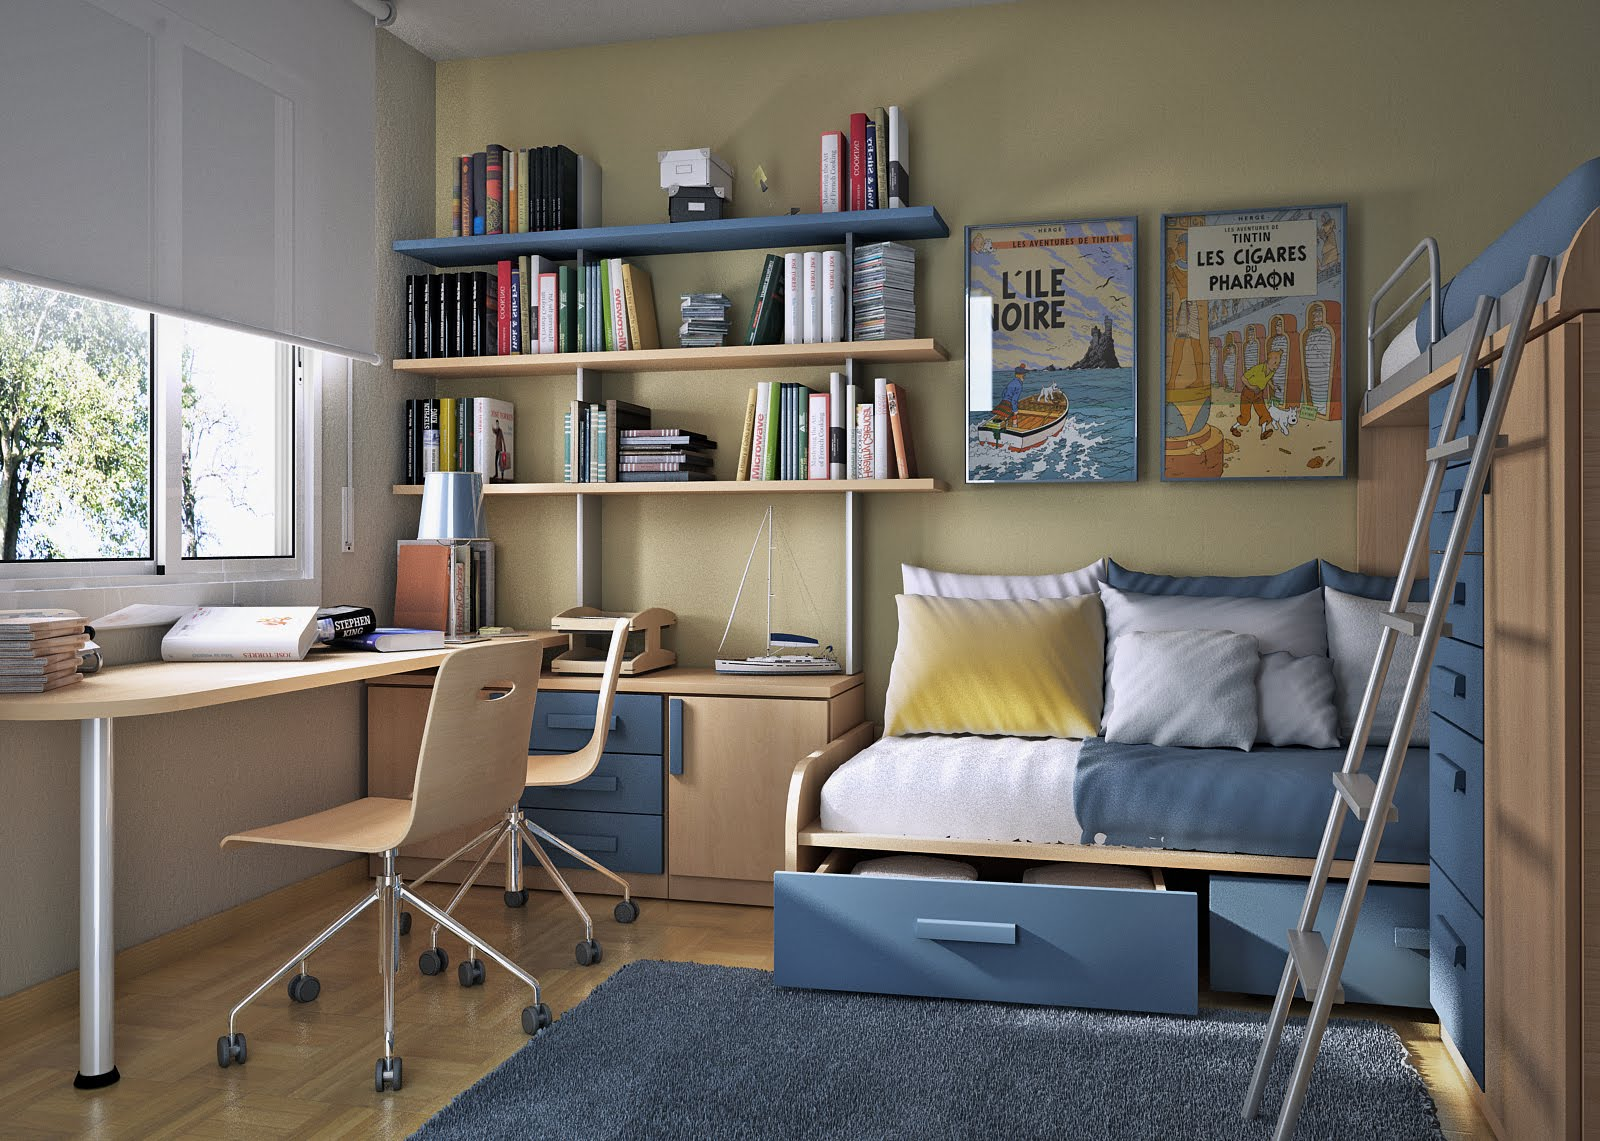 Small Study Room Ideas Small Floorspace Kids Rooms